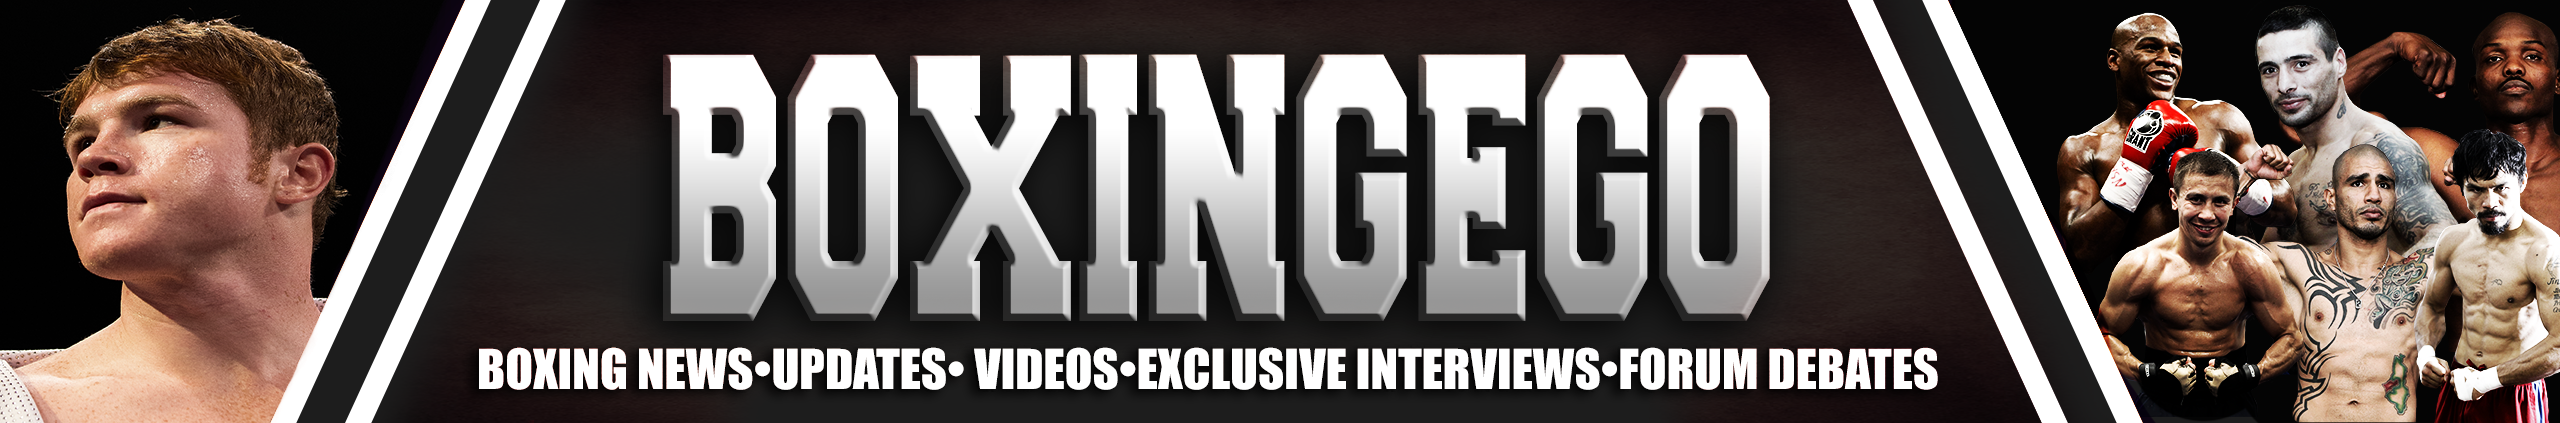 BOXING, SPORTS, BOXING NEWS & DISCUSSION, UPDATES. BOXING COMMENTATOR/REPORTER EGO FOR BOXINGEGO.